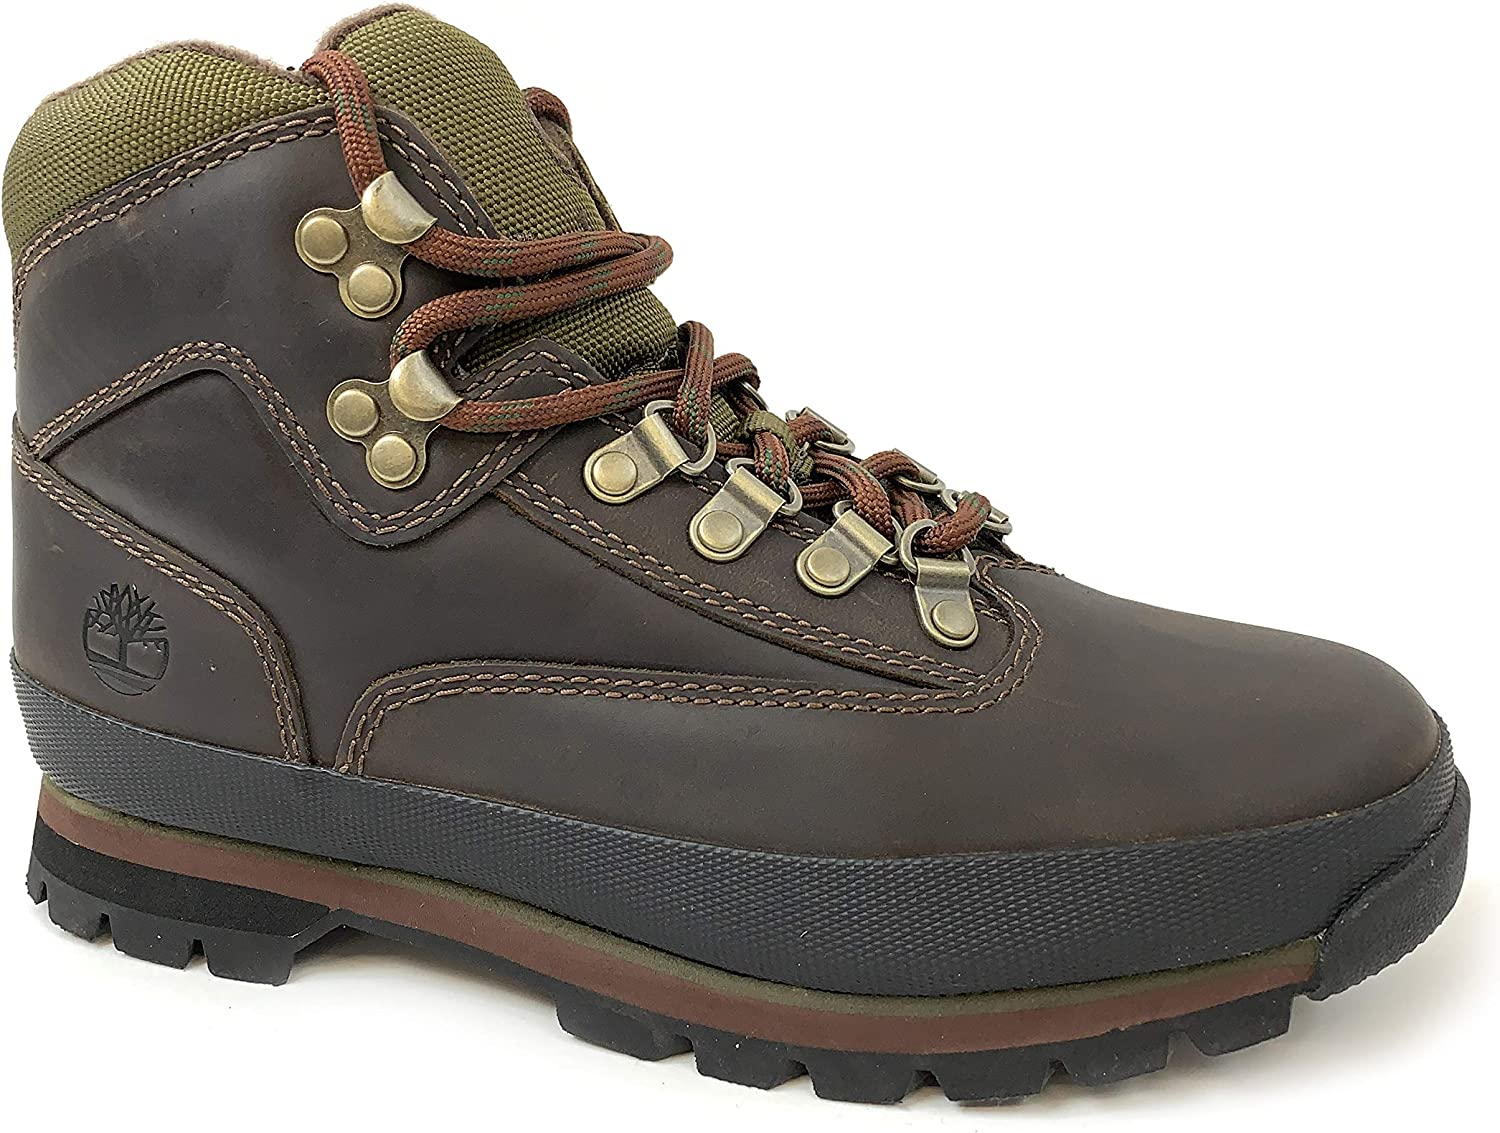 Timberland Women's Euro Hiker Brown Leather Boots